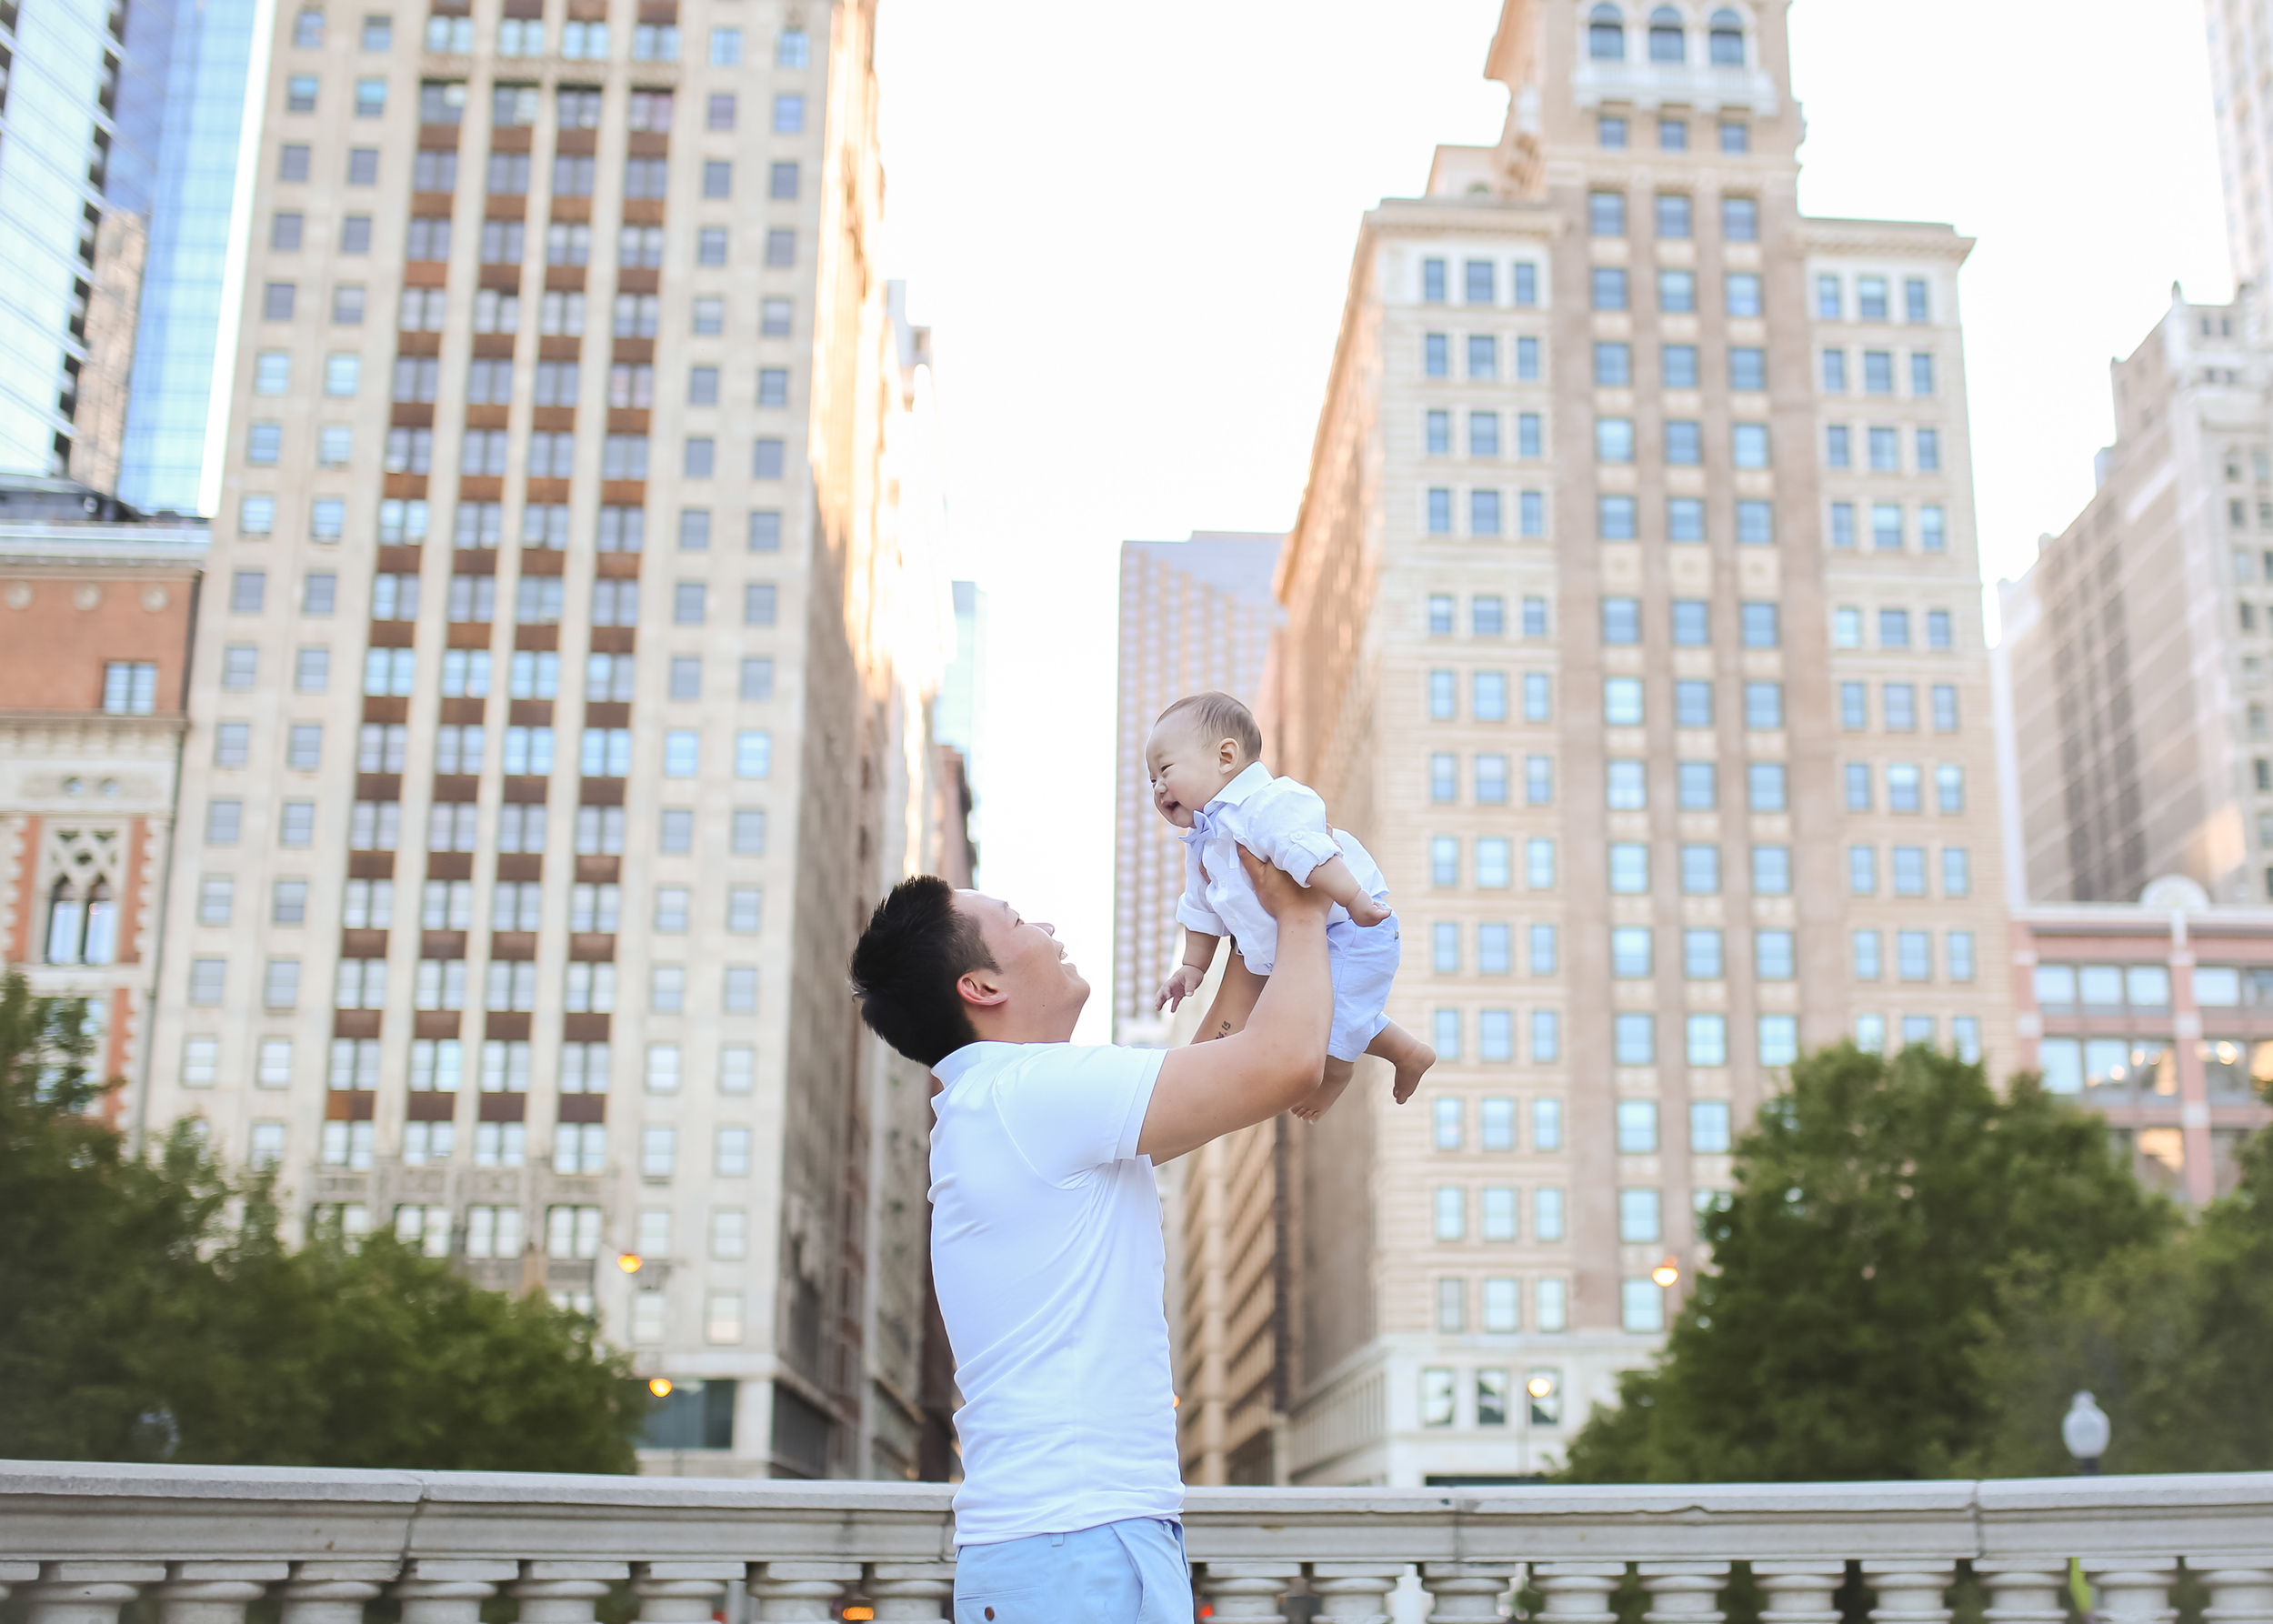 daddy son lifting in air chicago buildings